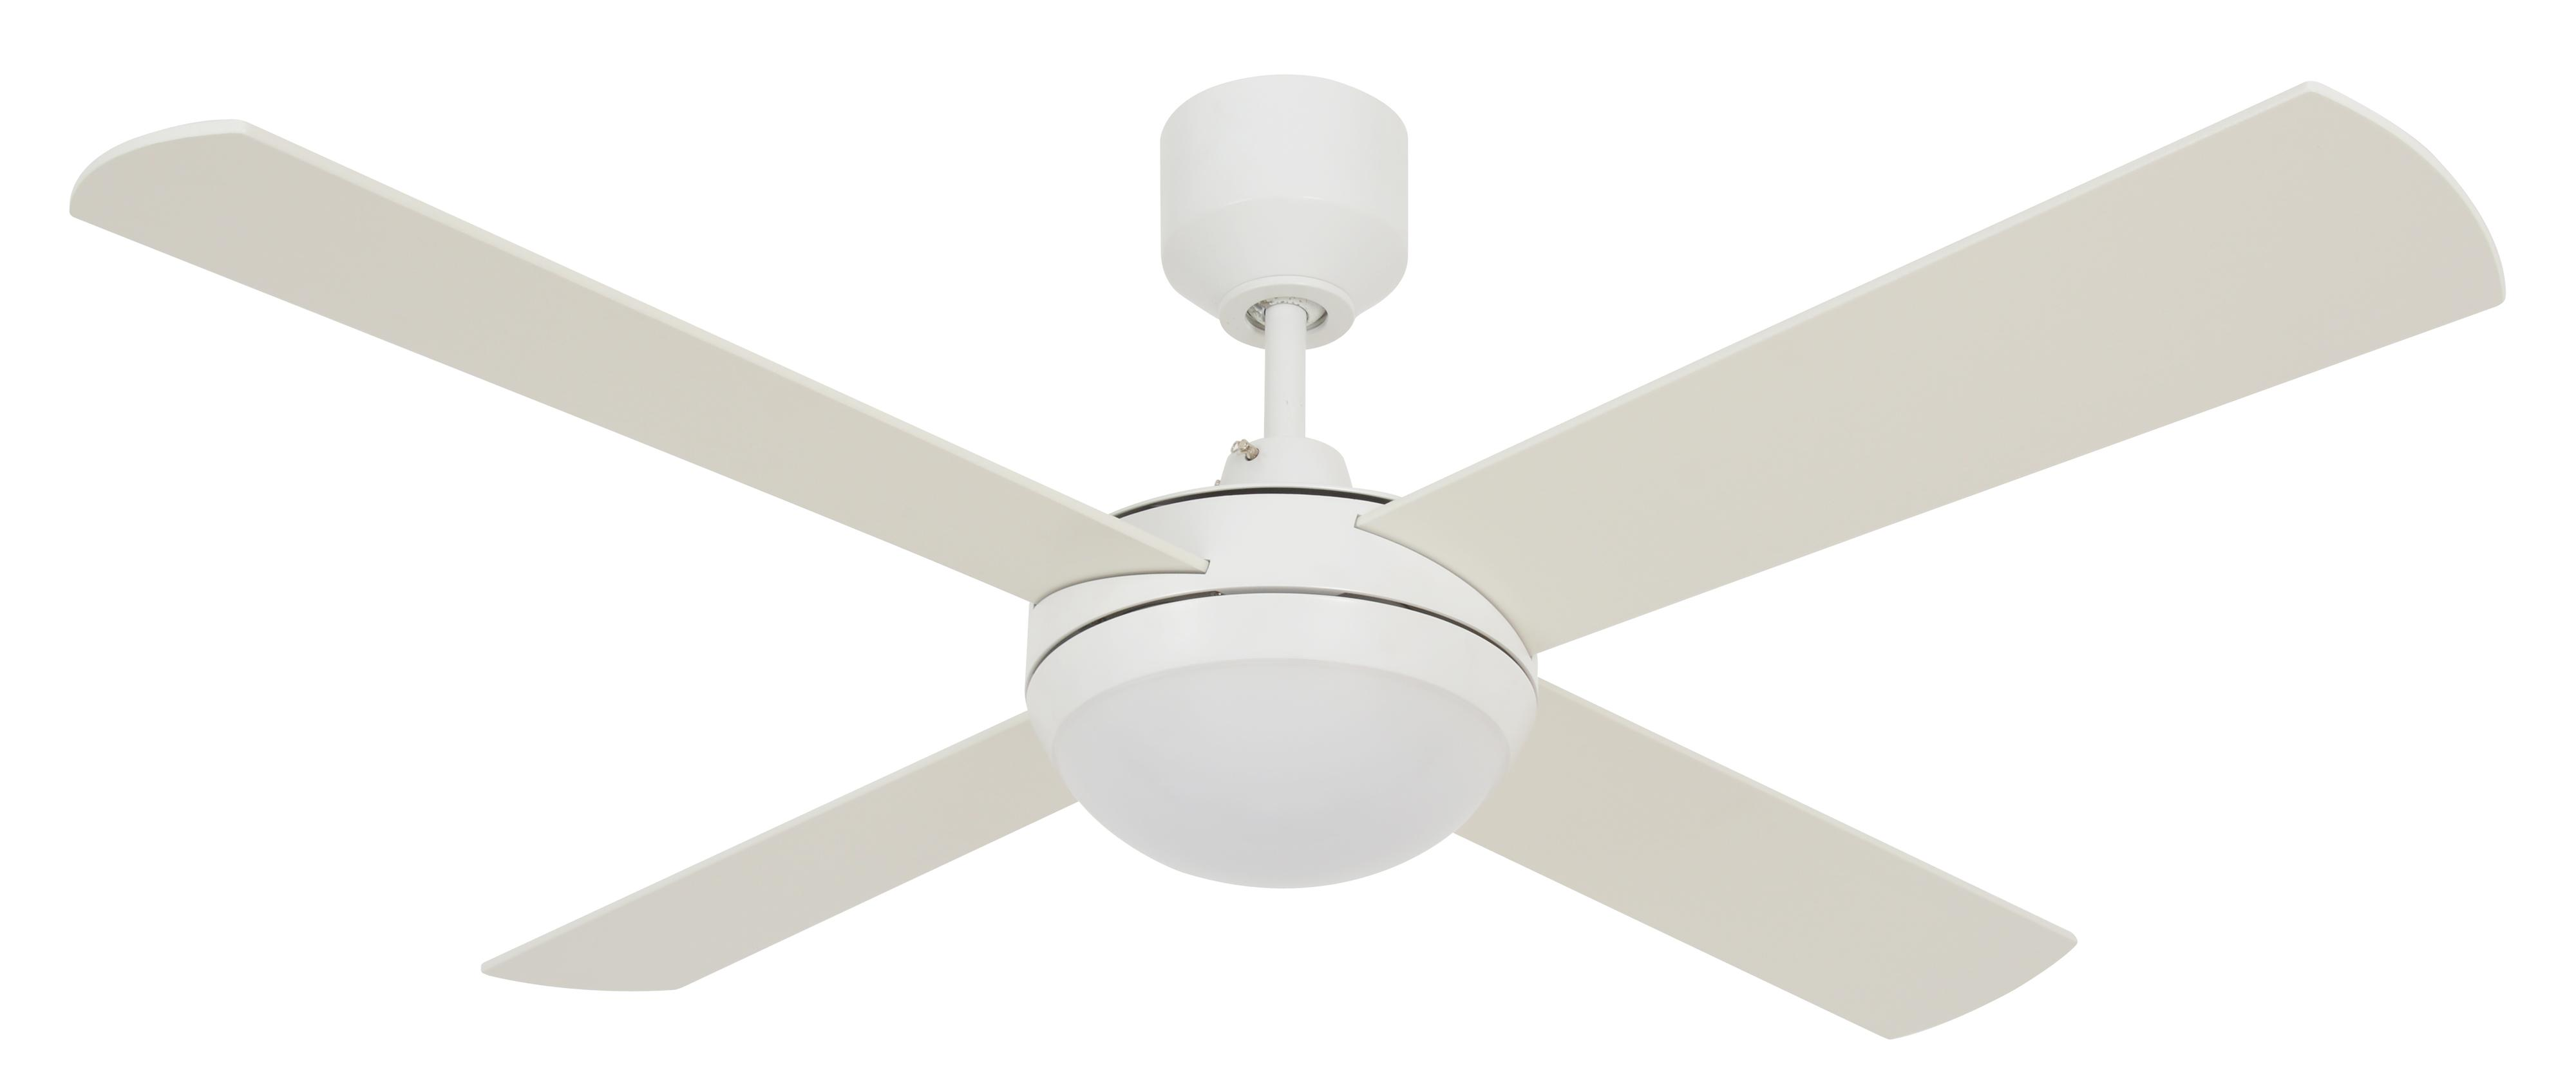 Led Ceiling Fan Futura Eco White With, Bathroom Heater Fan Light With Remote Control